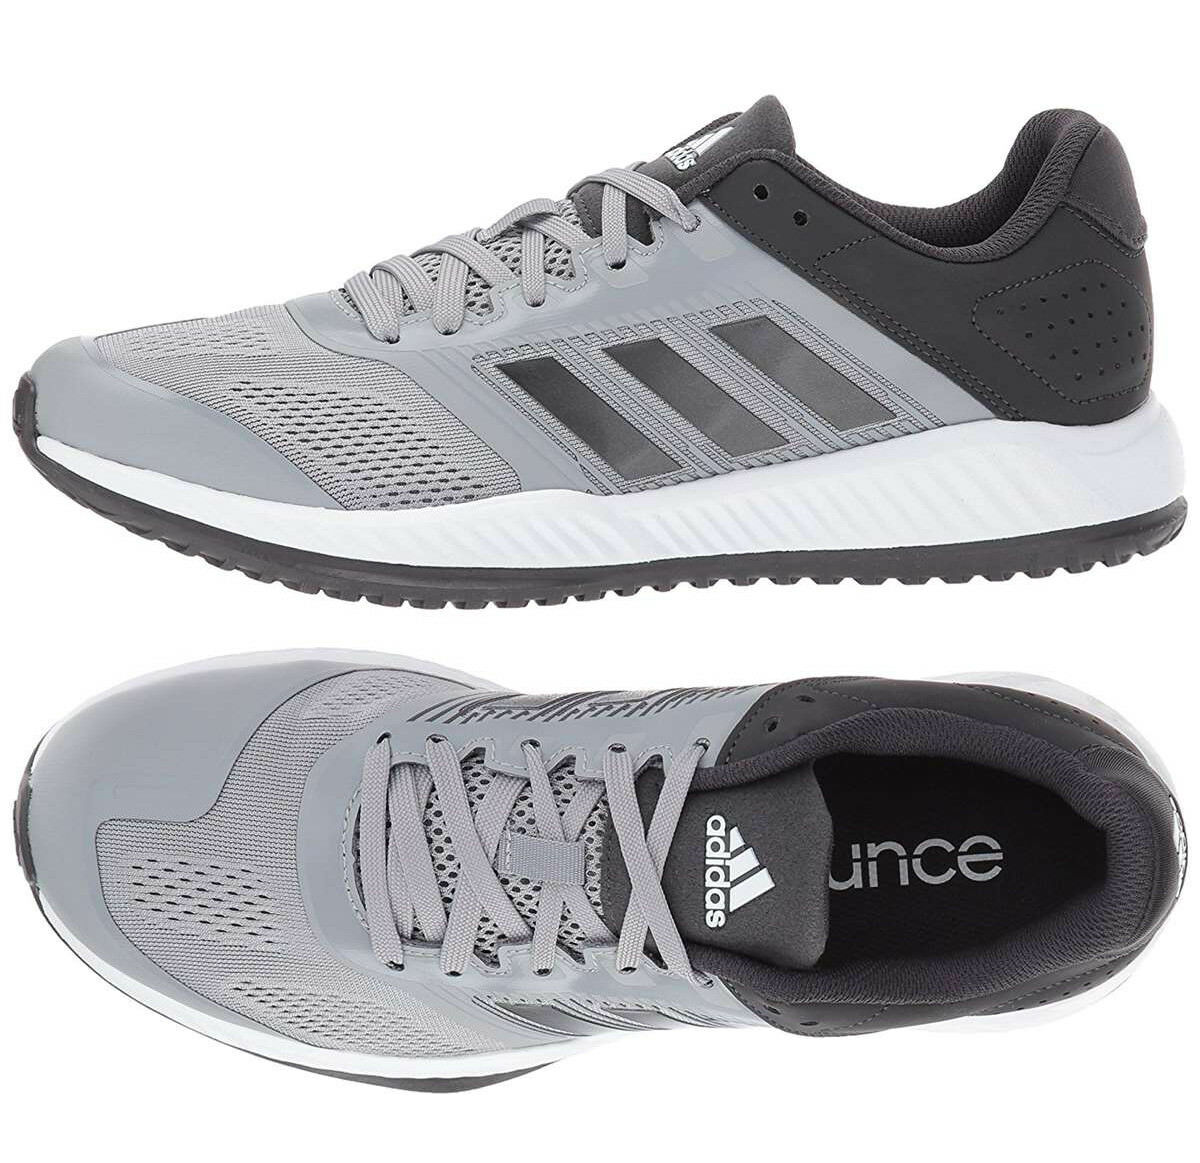 Mens Adidas ZG M Cross Training shoes Grey Sneakers BB3212 NEW Authentic